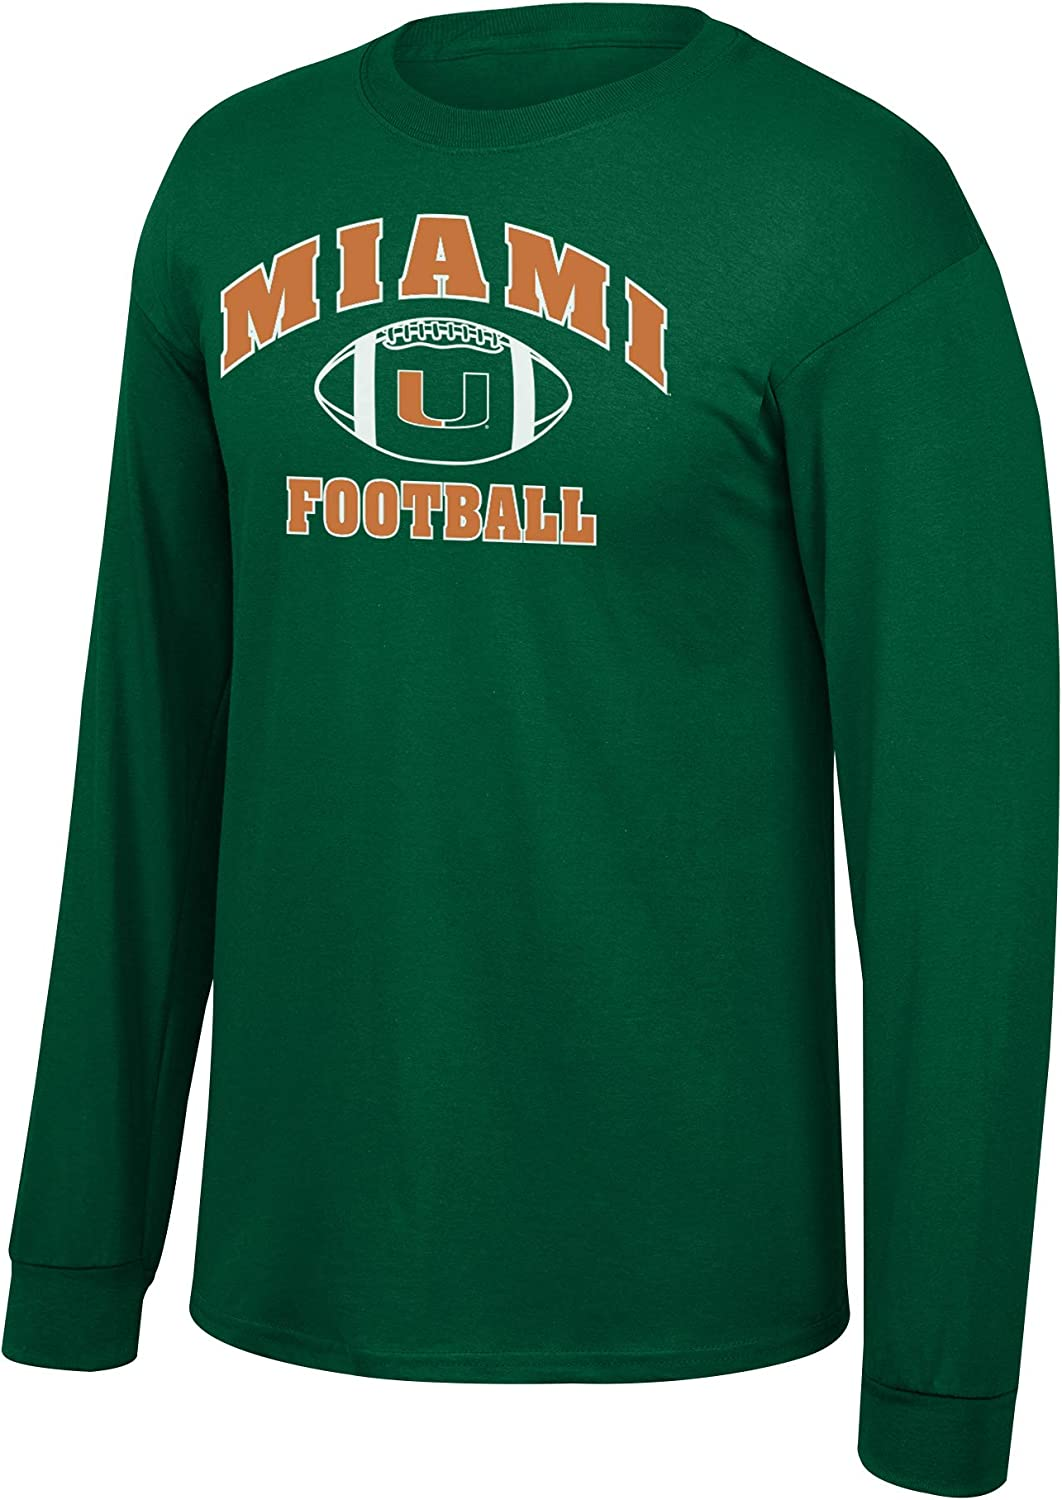 Elite Fan Shop NCAA Mens Football Long Sleeve T-Shirt Team Color